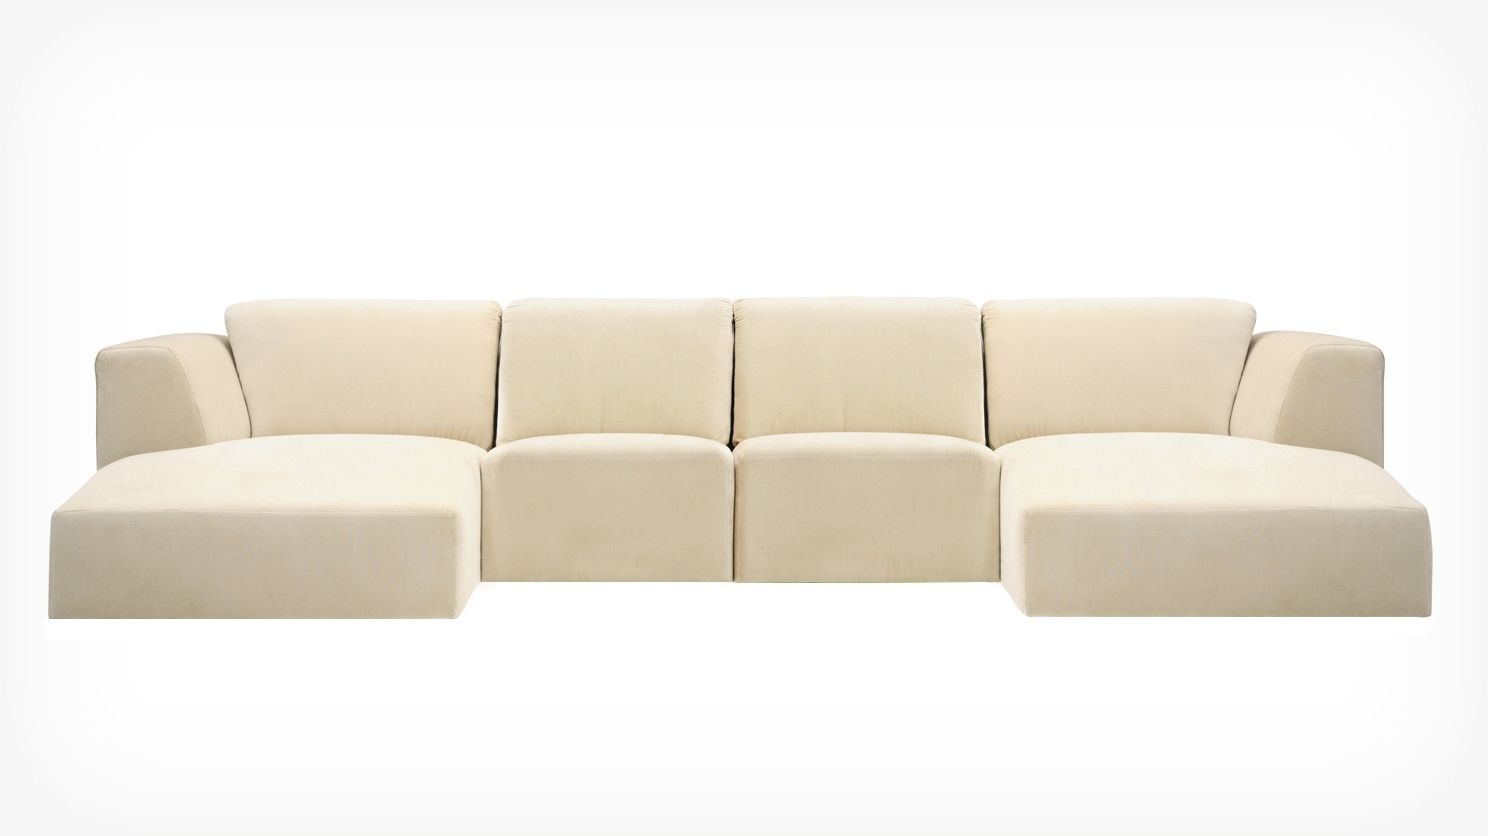 Eq3 | Morten 4 Piece Sectional Sofa With Chaise – Fabric Throughout Eq3 Sectional Sofas (Image 6 of 10)